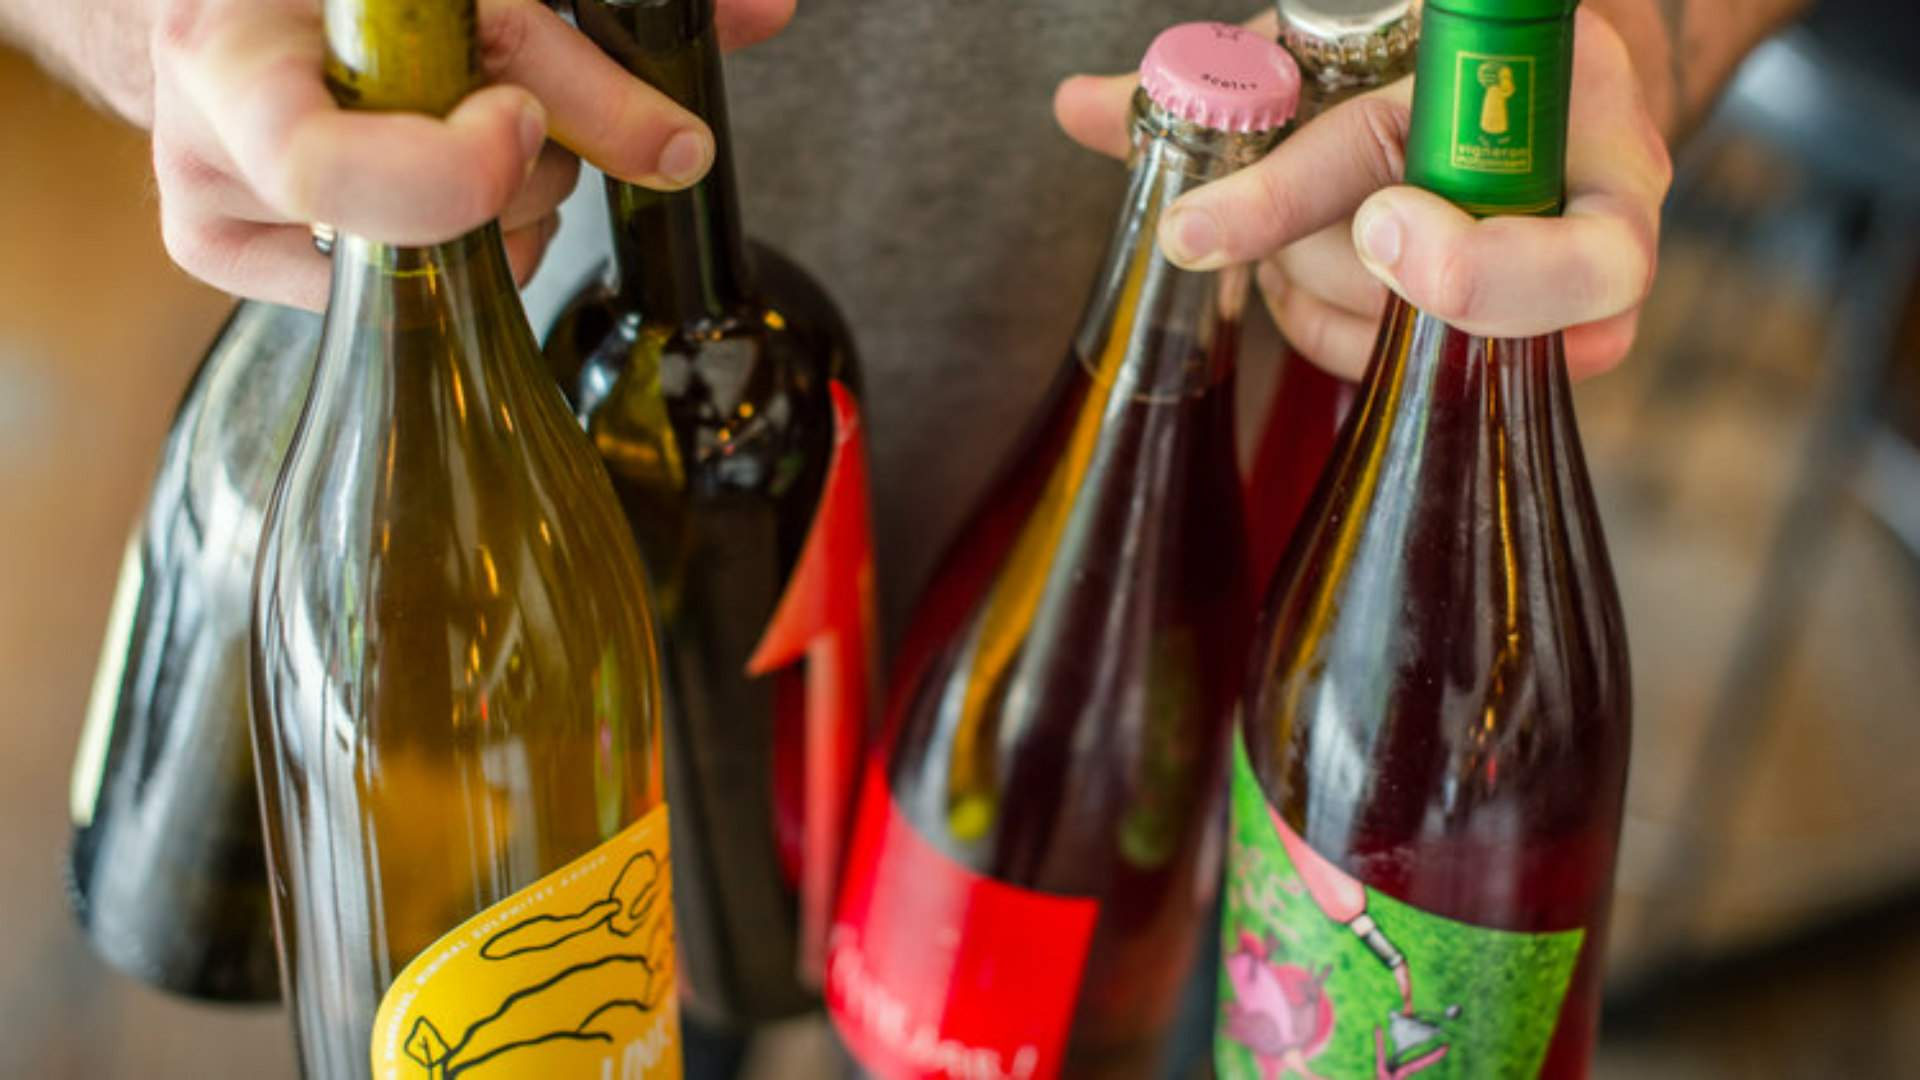 Ten Handy Services Delivering Wine, Beer and Spirits Straight to Your Front Door